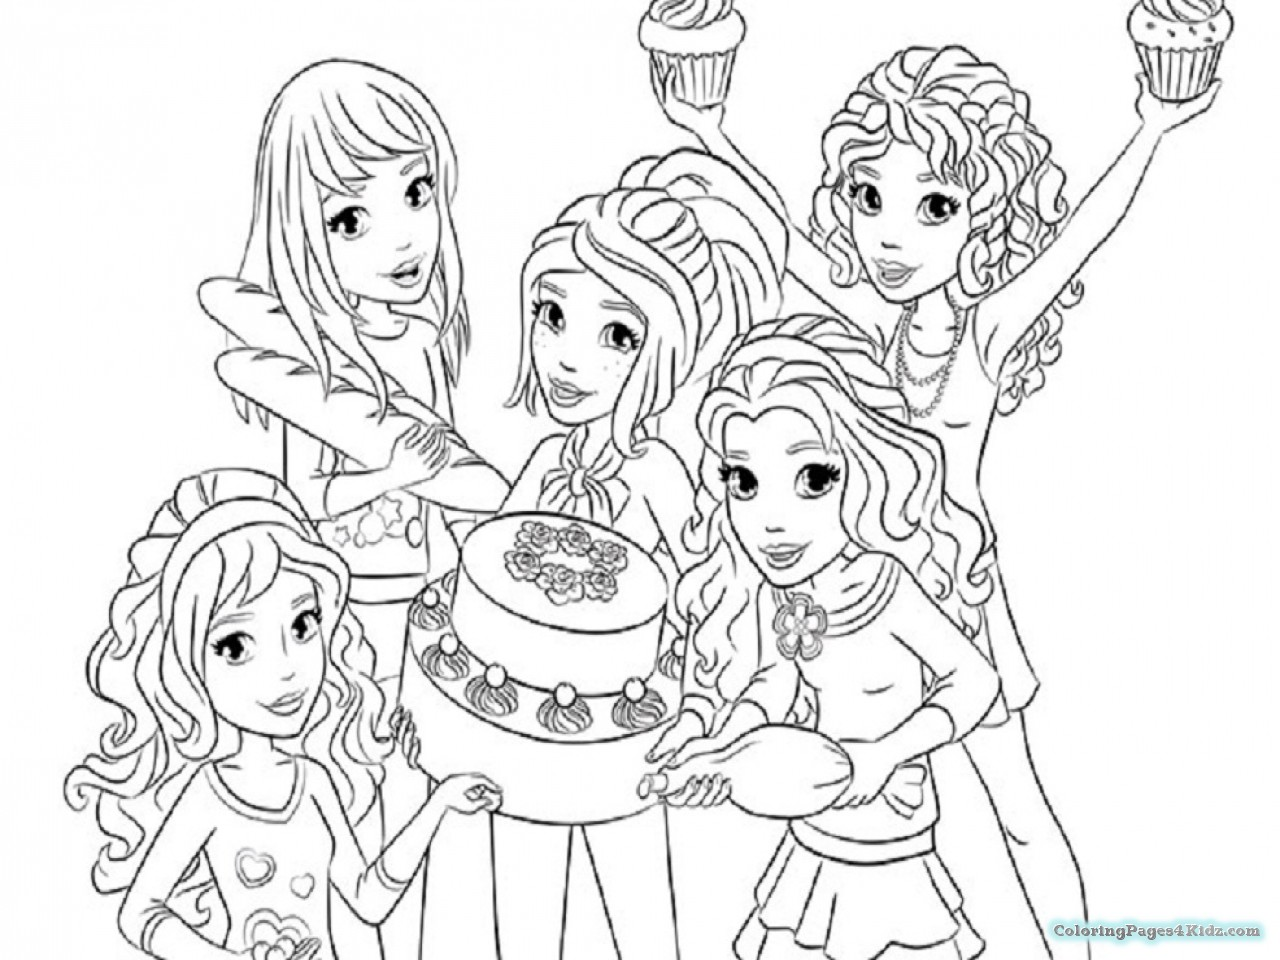 lego friends coloring pages printable lego friends coloring pages to download and print for free printable coloring lego friends pages